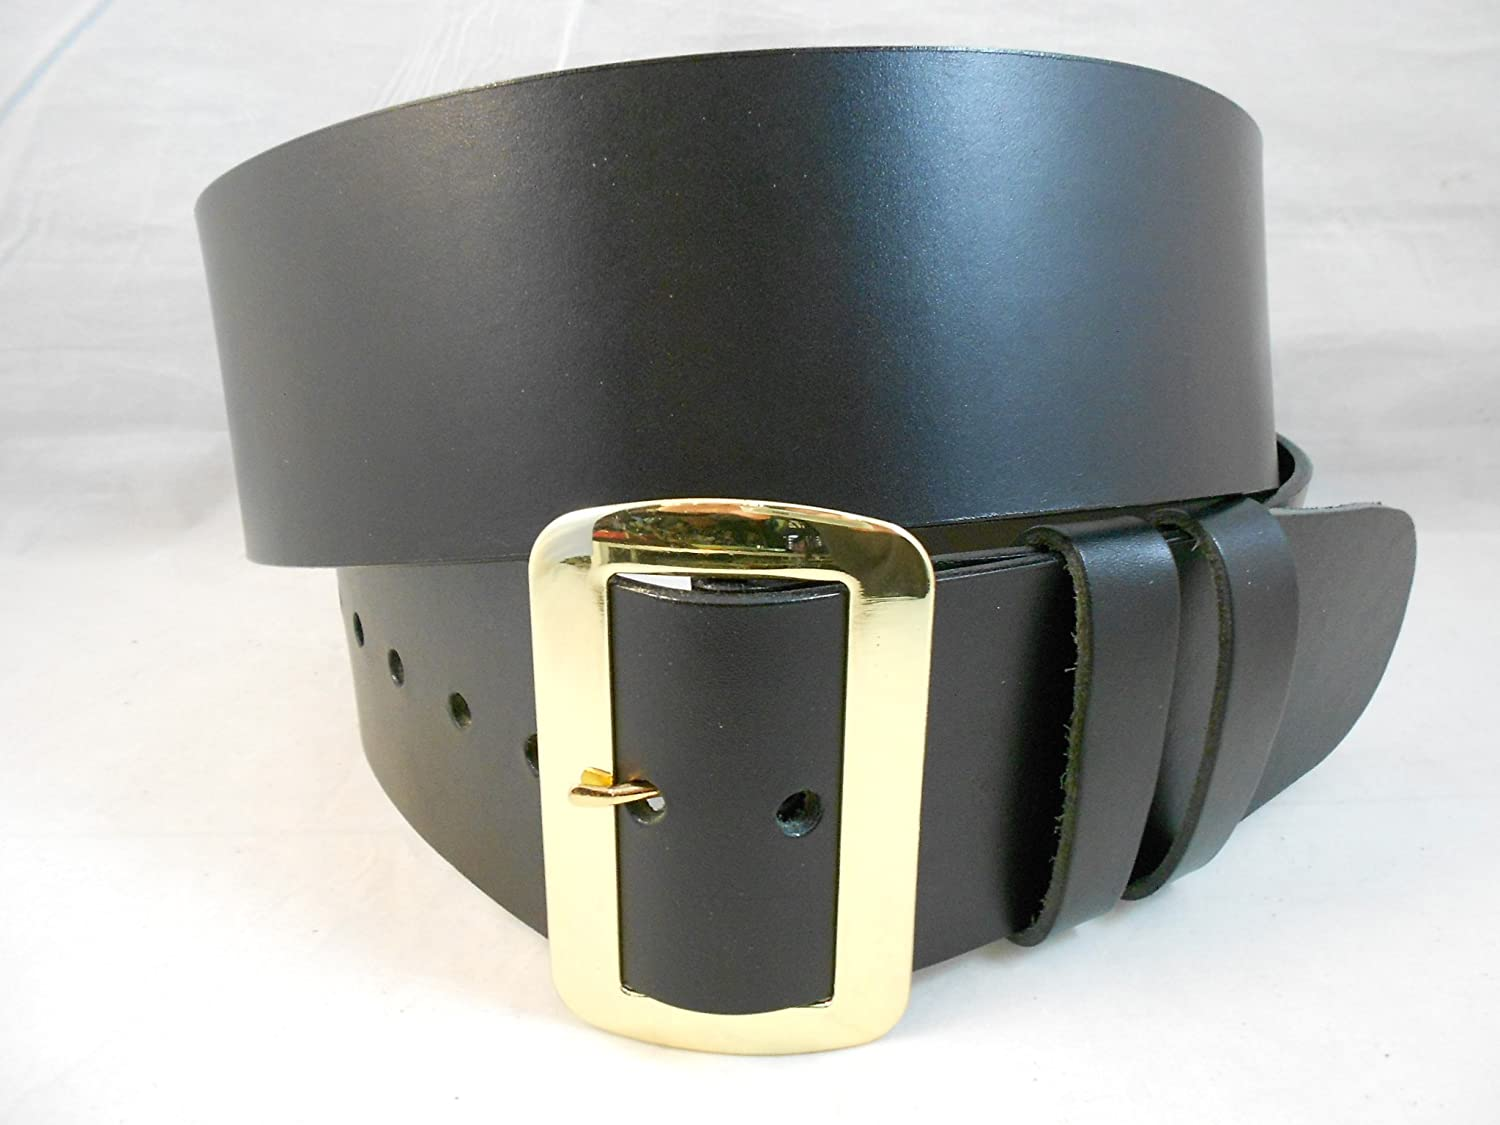 Santa Claus Hand Crafted Solid Black Leather Belt - DeluxeAdultCostumes.com